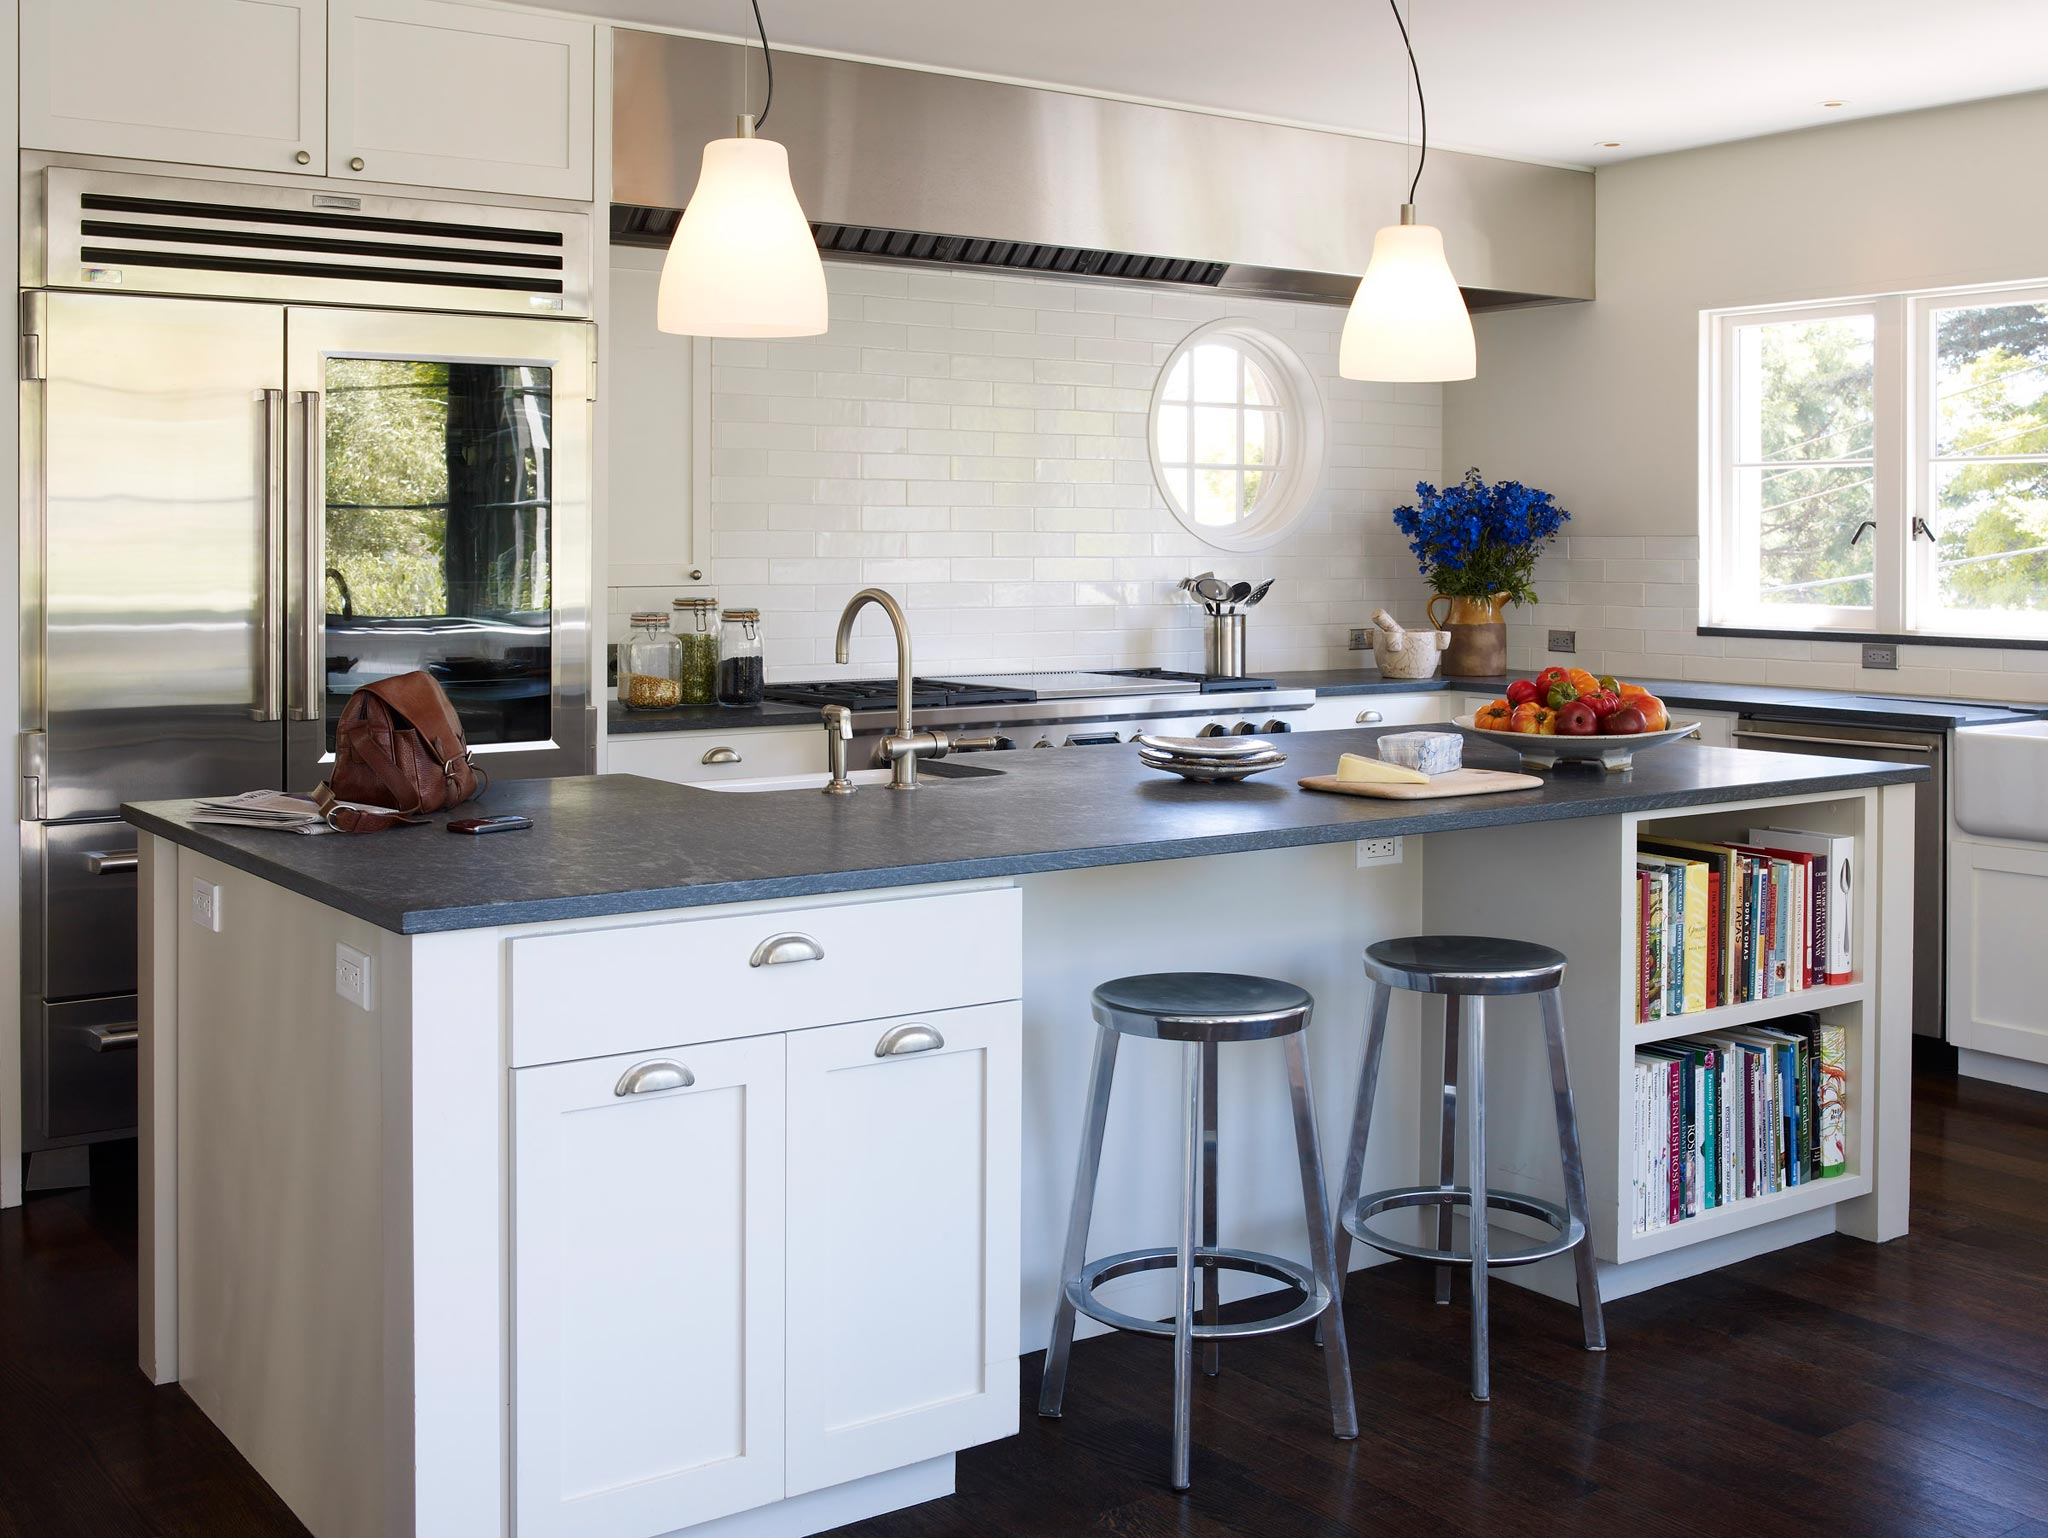 Claremont modern aesthetic pavillon house interior view of kitchen